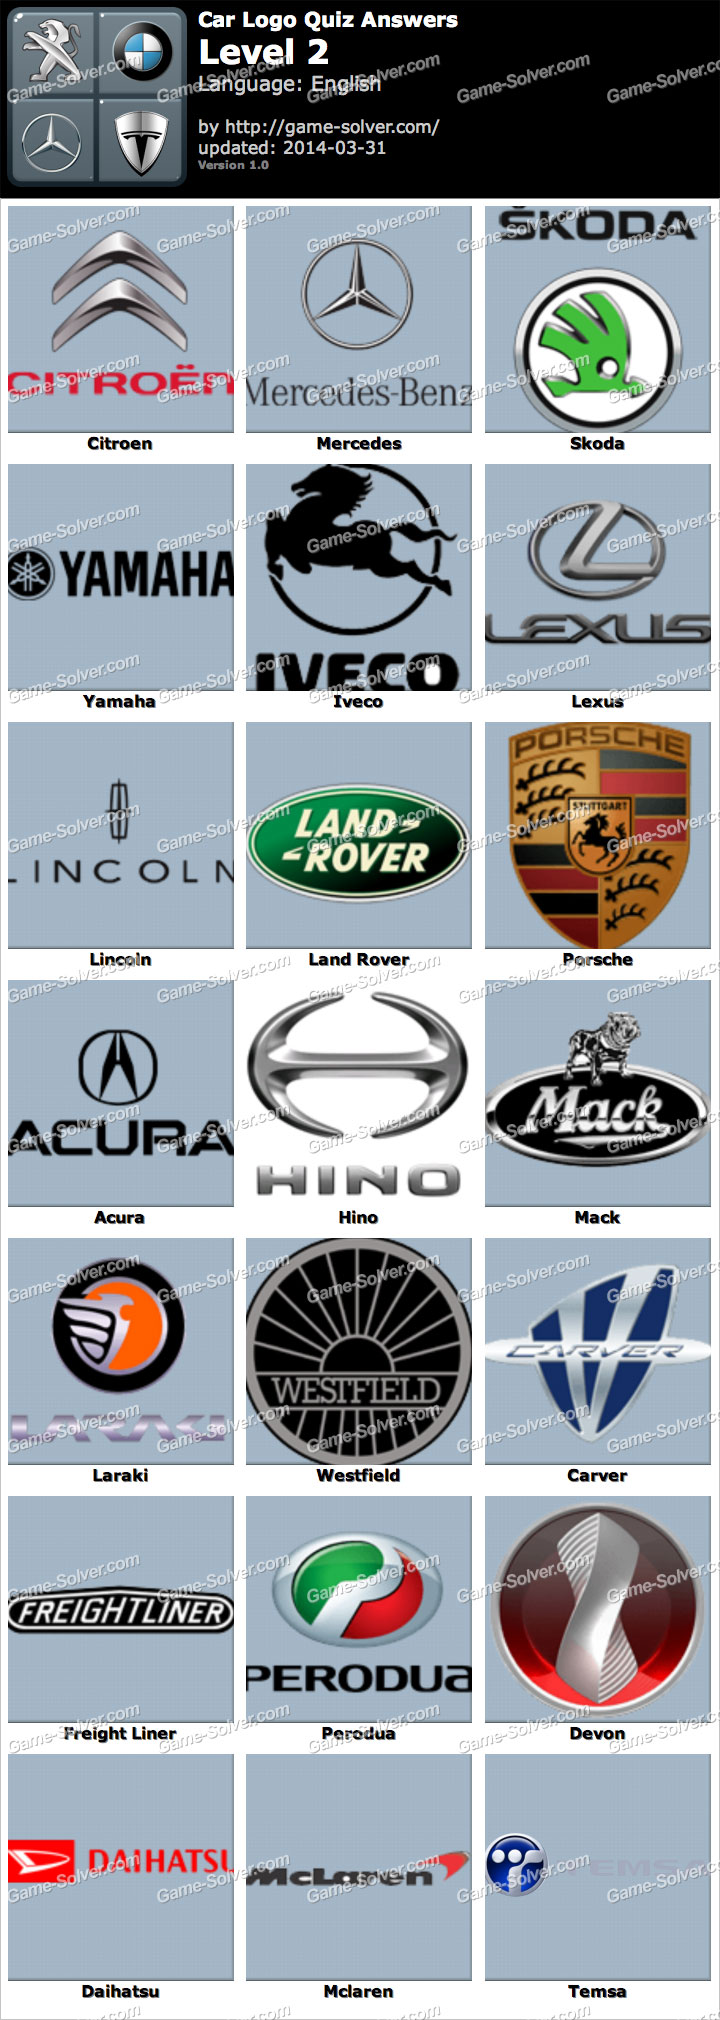 Car Logo Quiz Level 2 - Game Solver